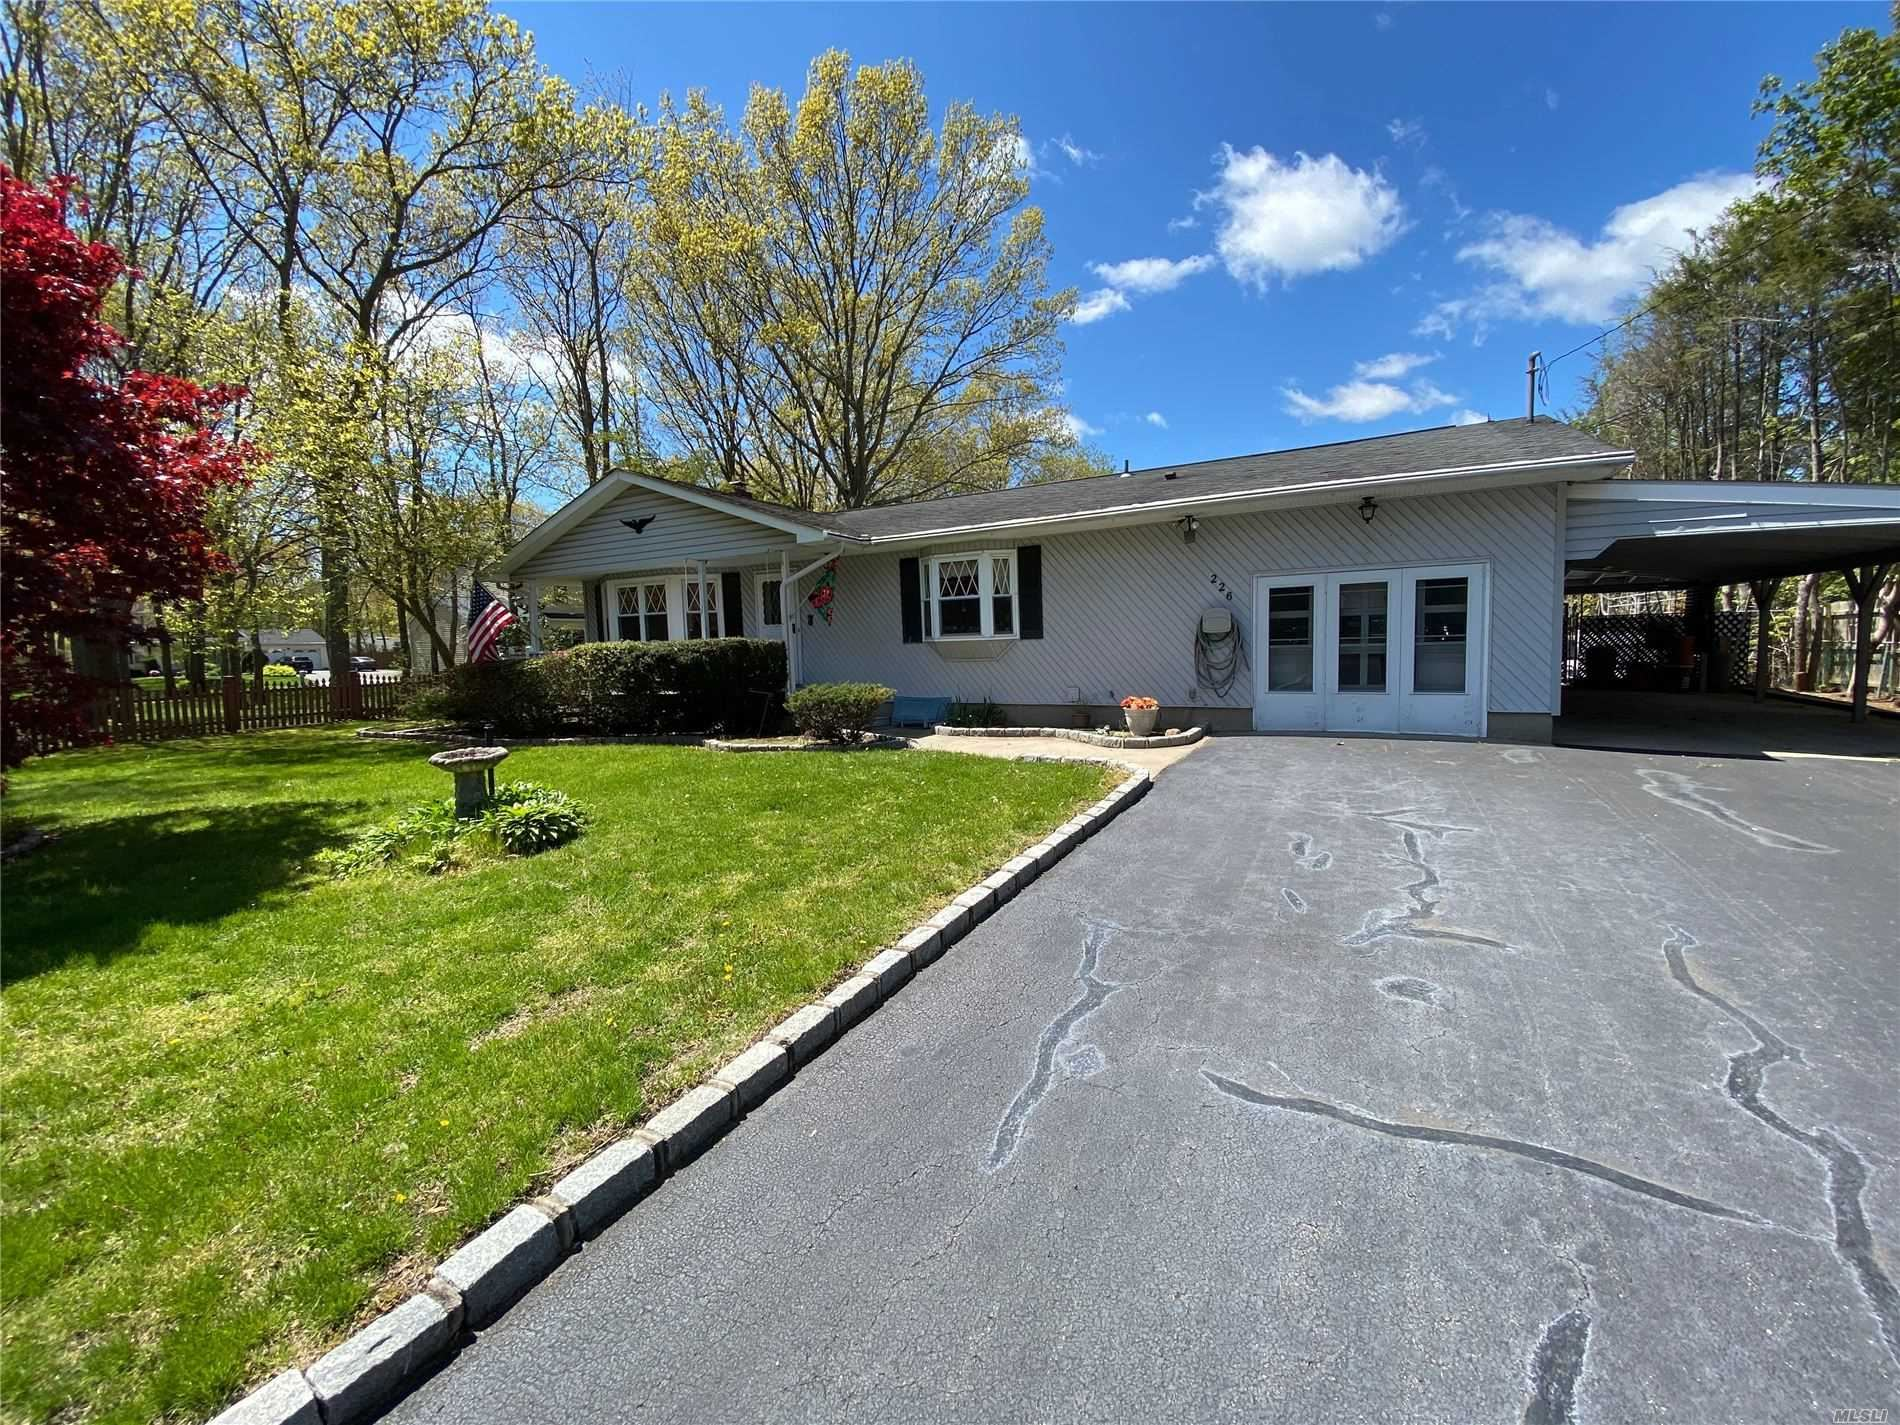 226 Maple St, Medford, NY 11763 - MLS#: 3214965